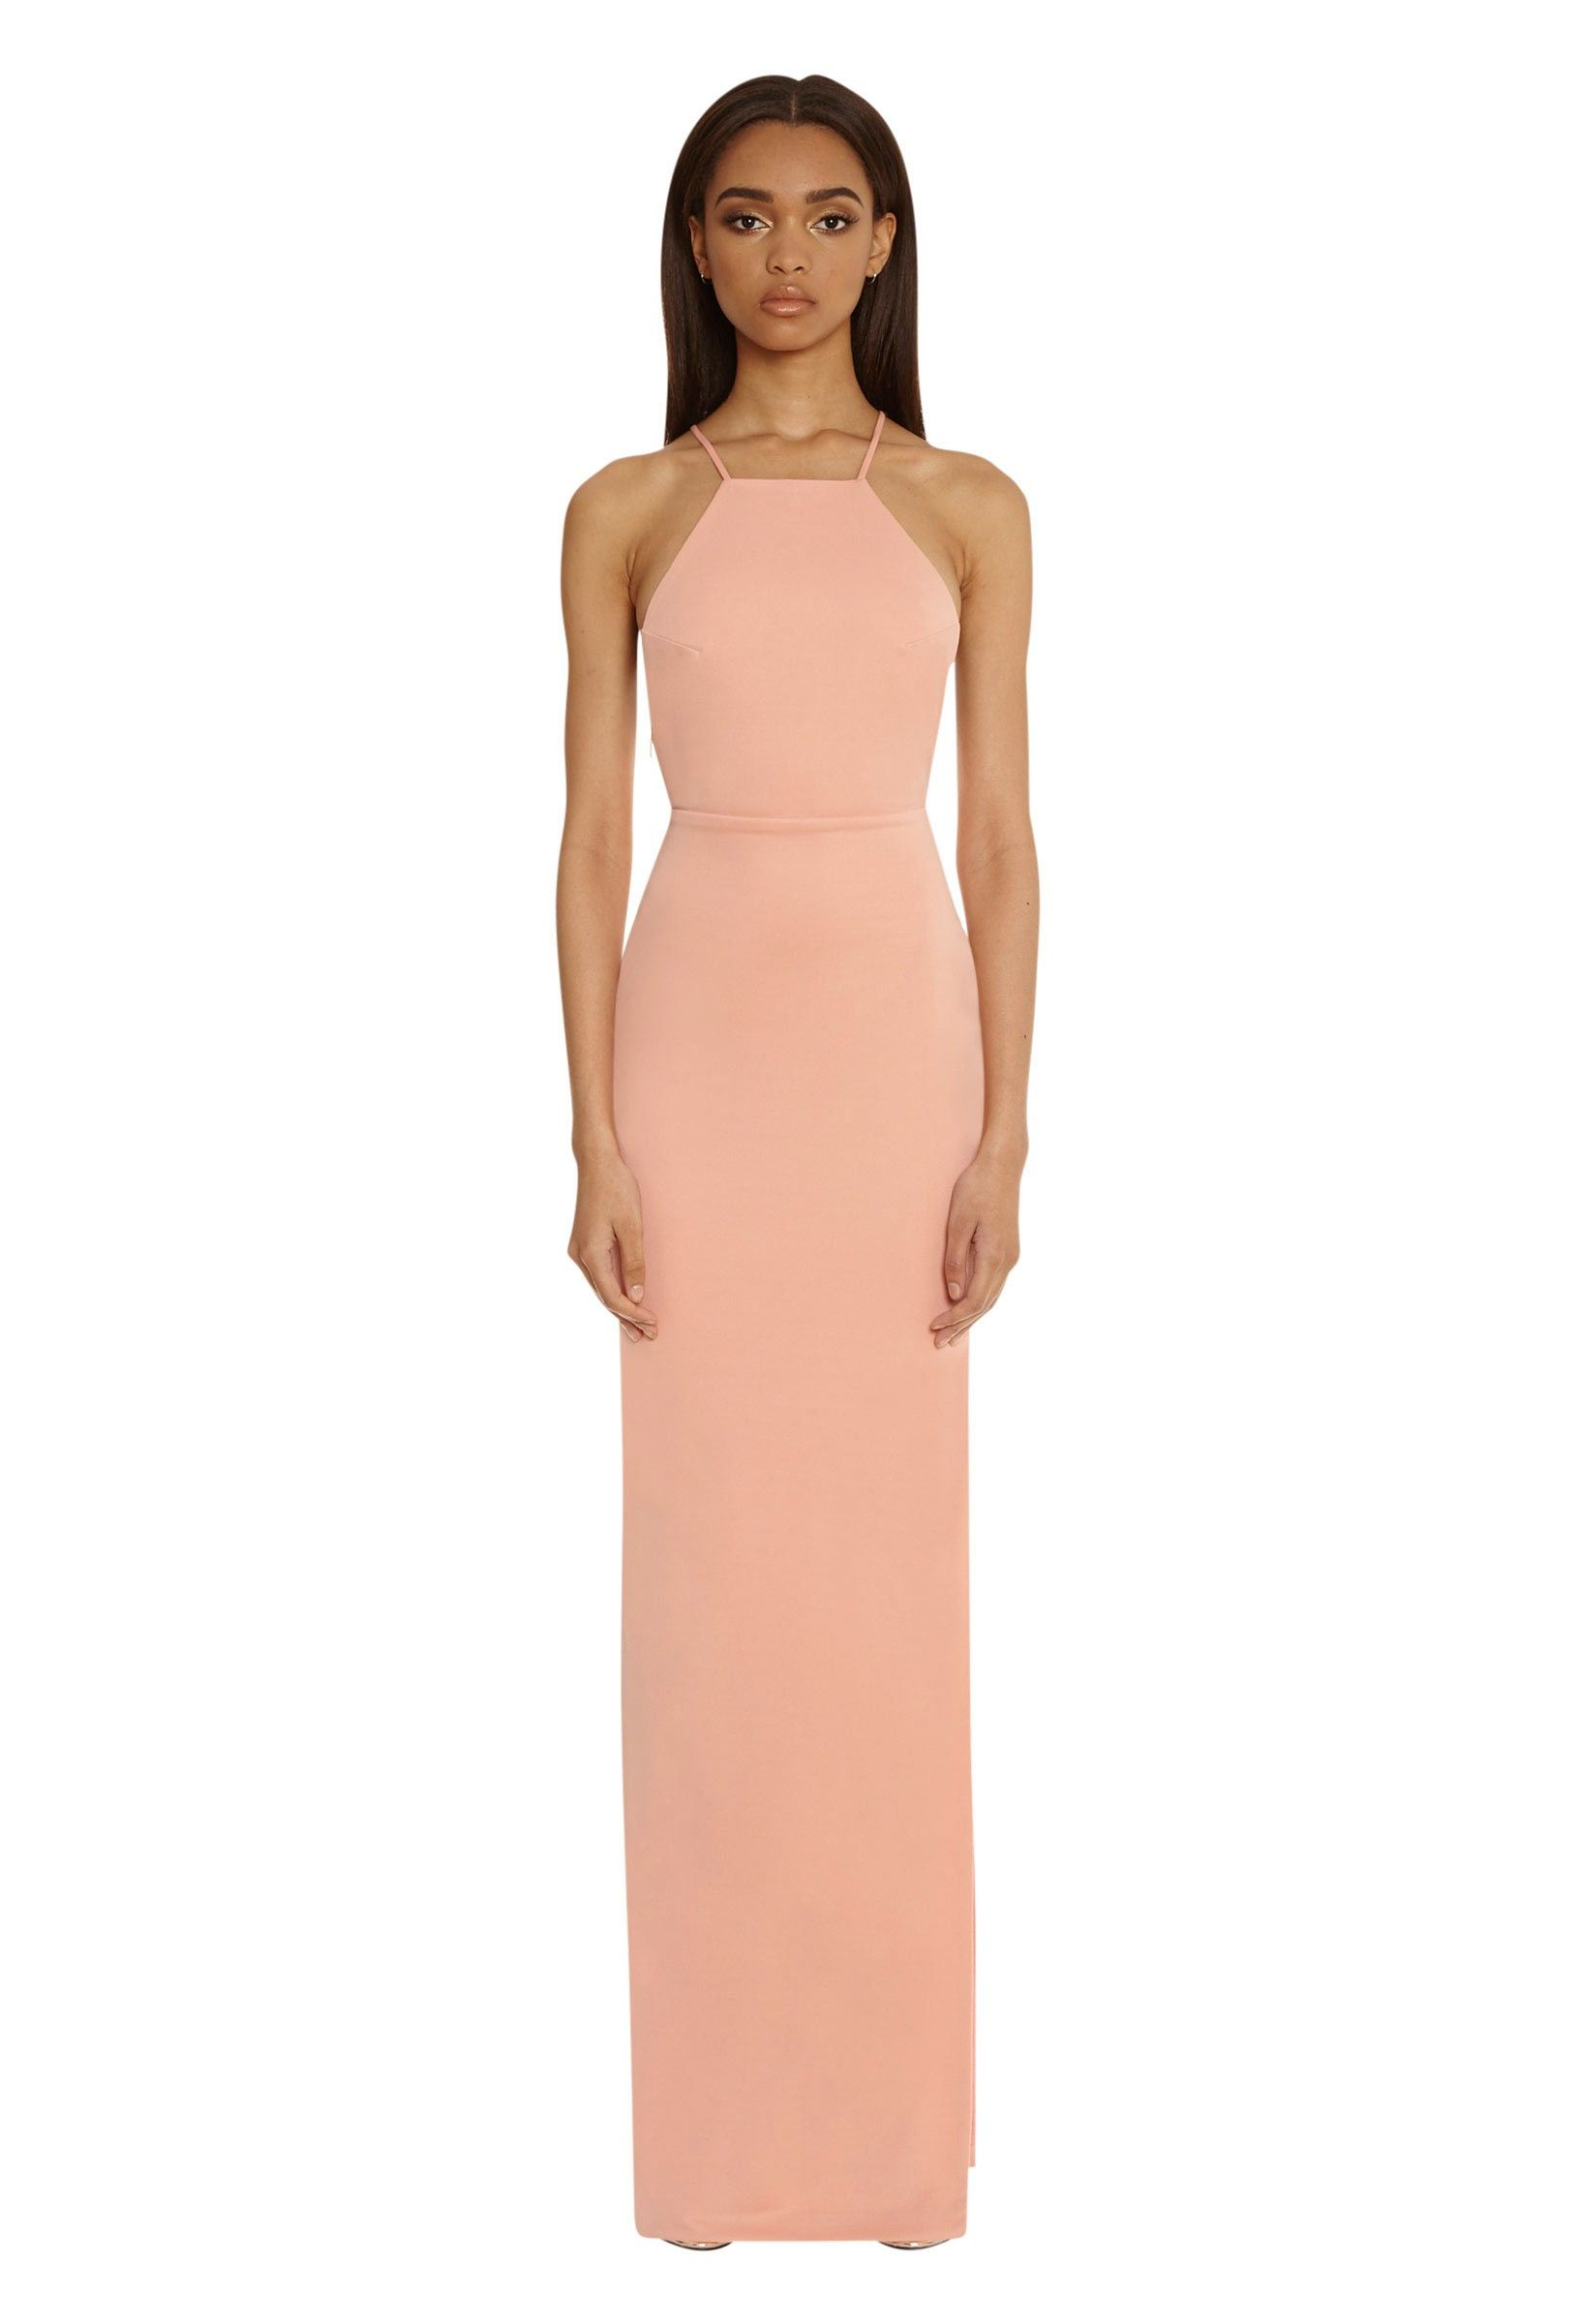 Crime Bodycon Maxi Dress with Side Split - Nude | Grad Inspiration ...